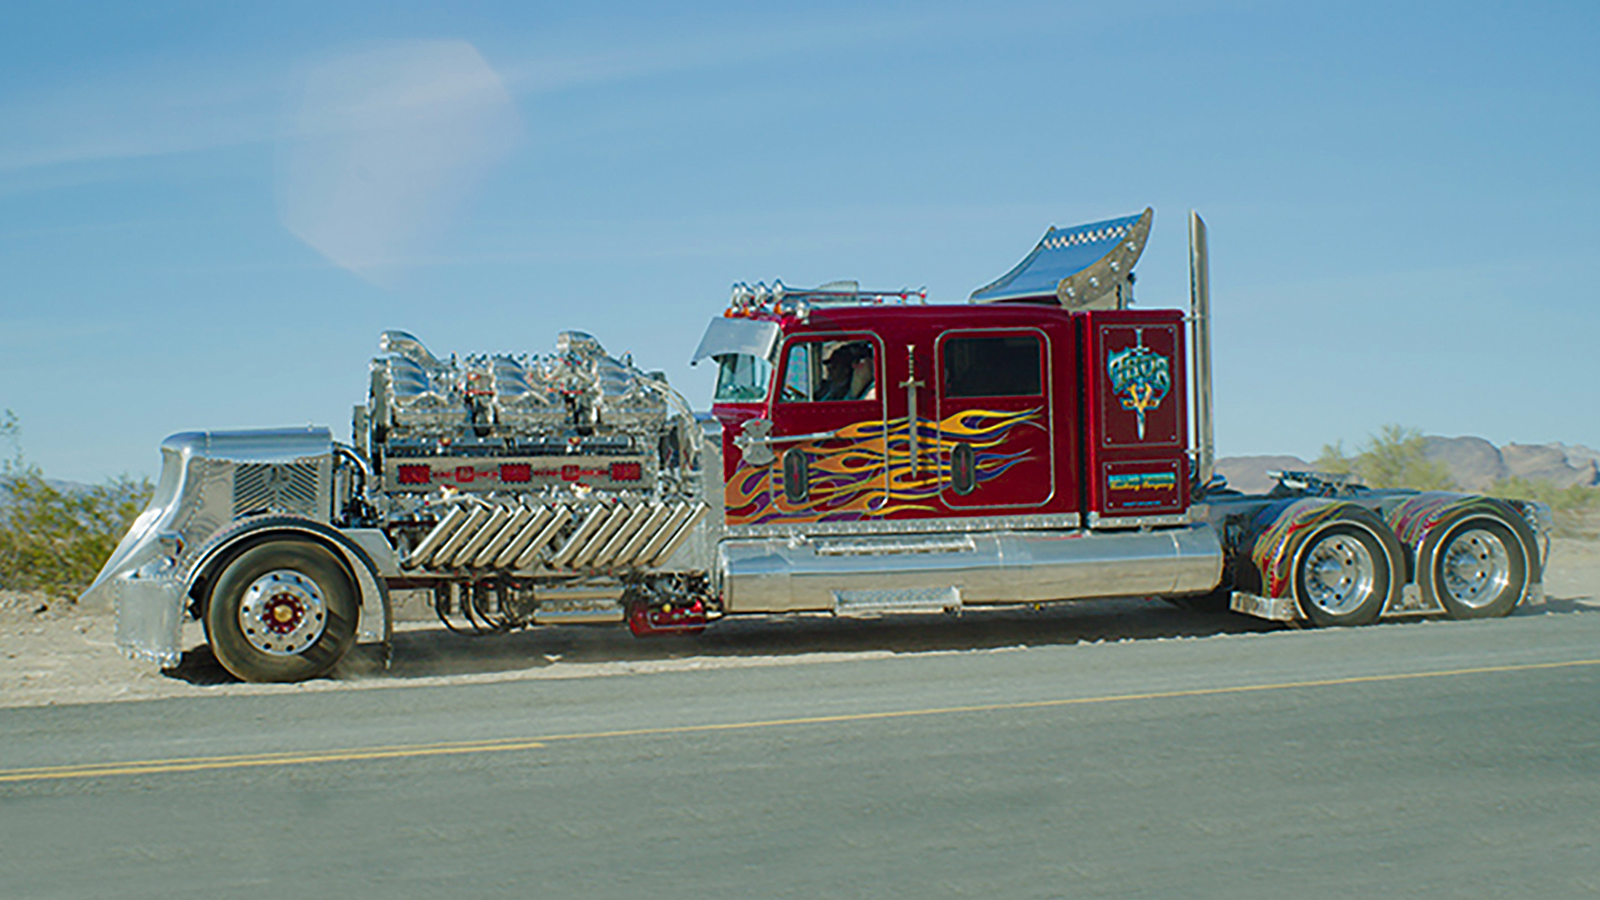 This custom rig just sold for an incredible $13.2m!